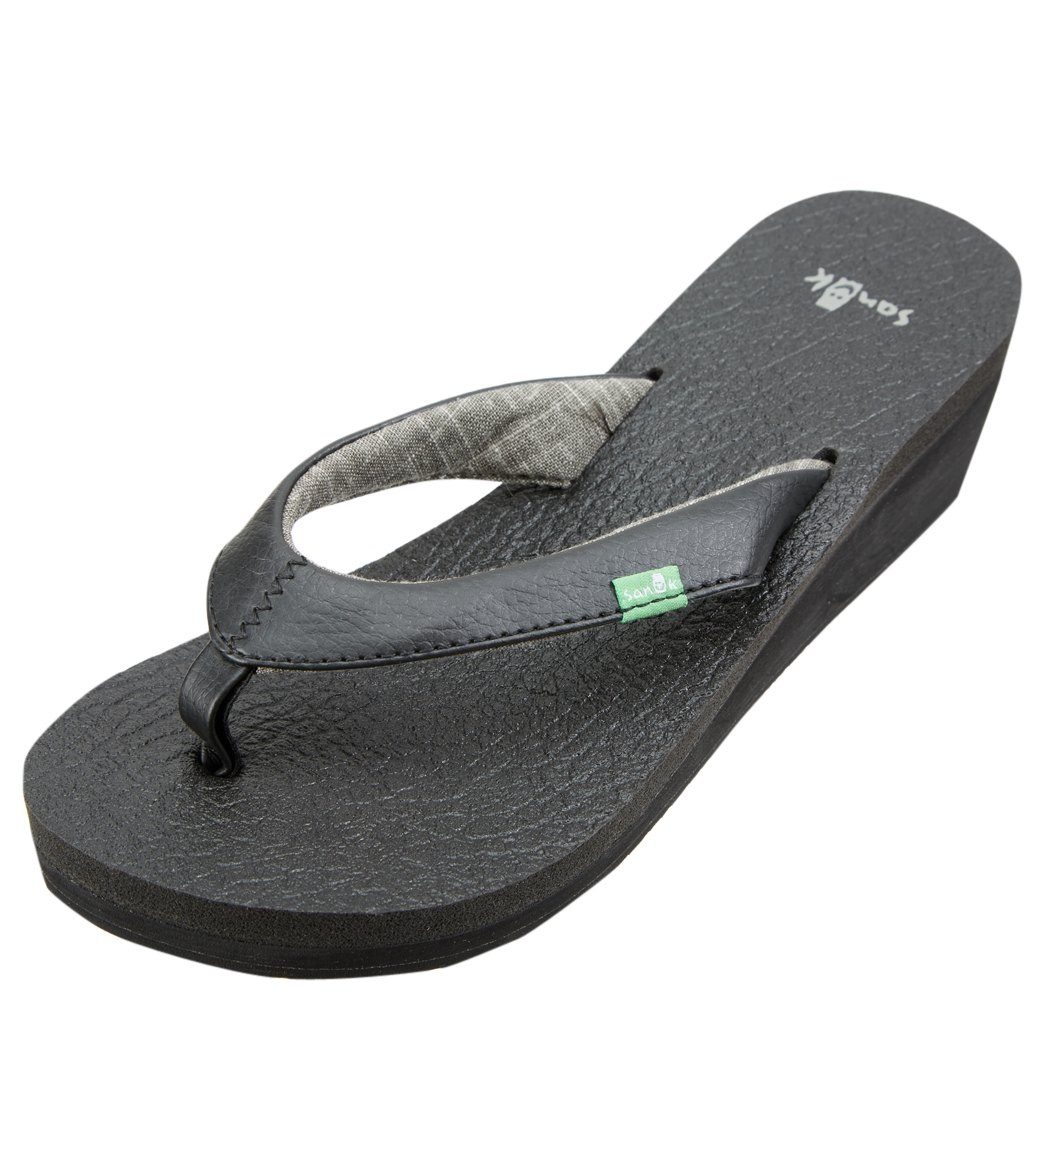 colors mat flip ebay blk sling all itm yoga flops sanuk sandals sizes